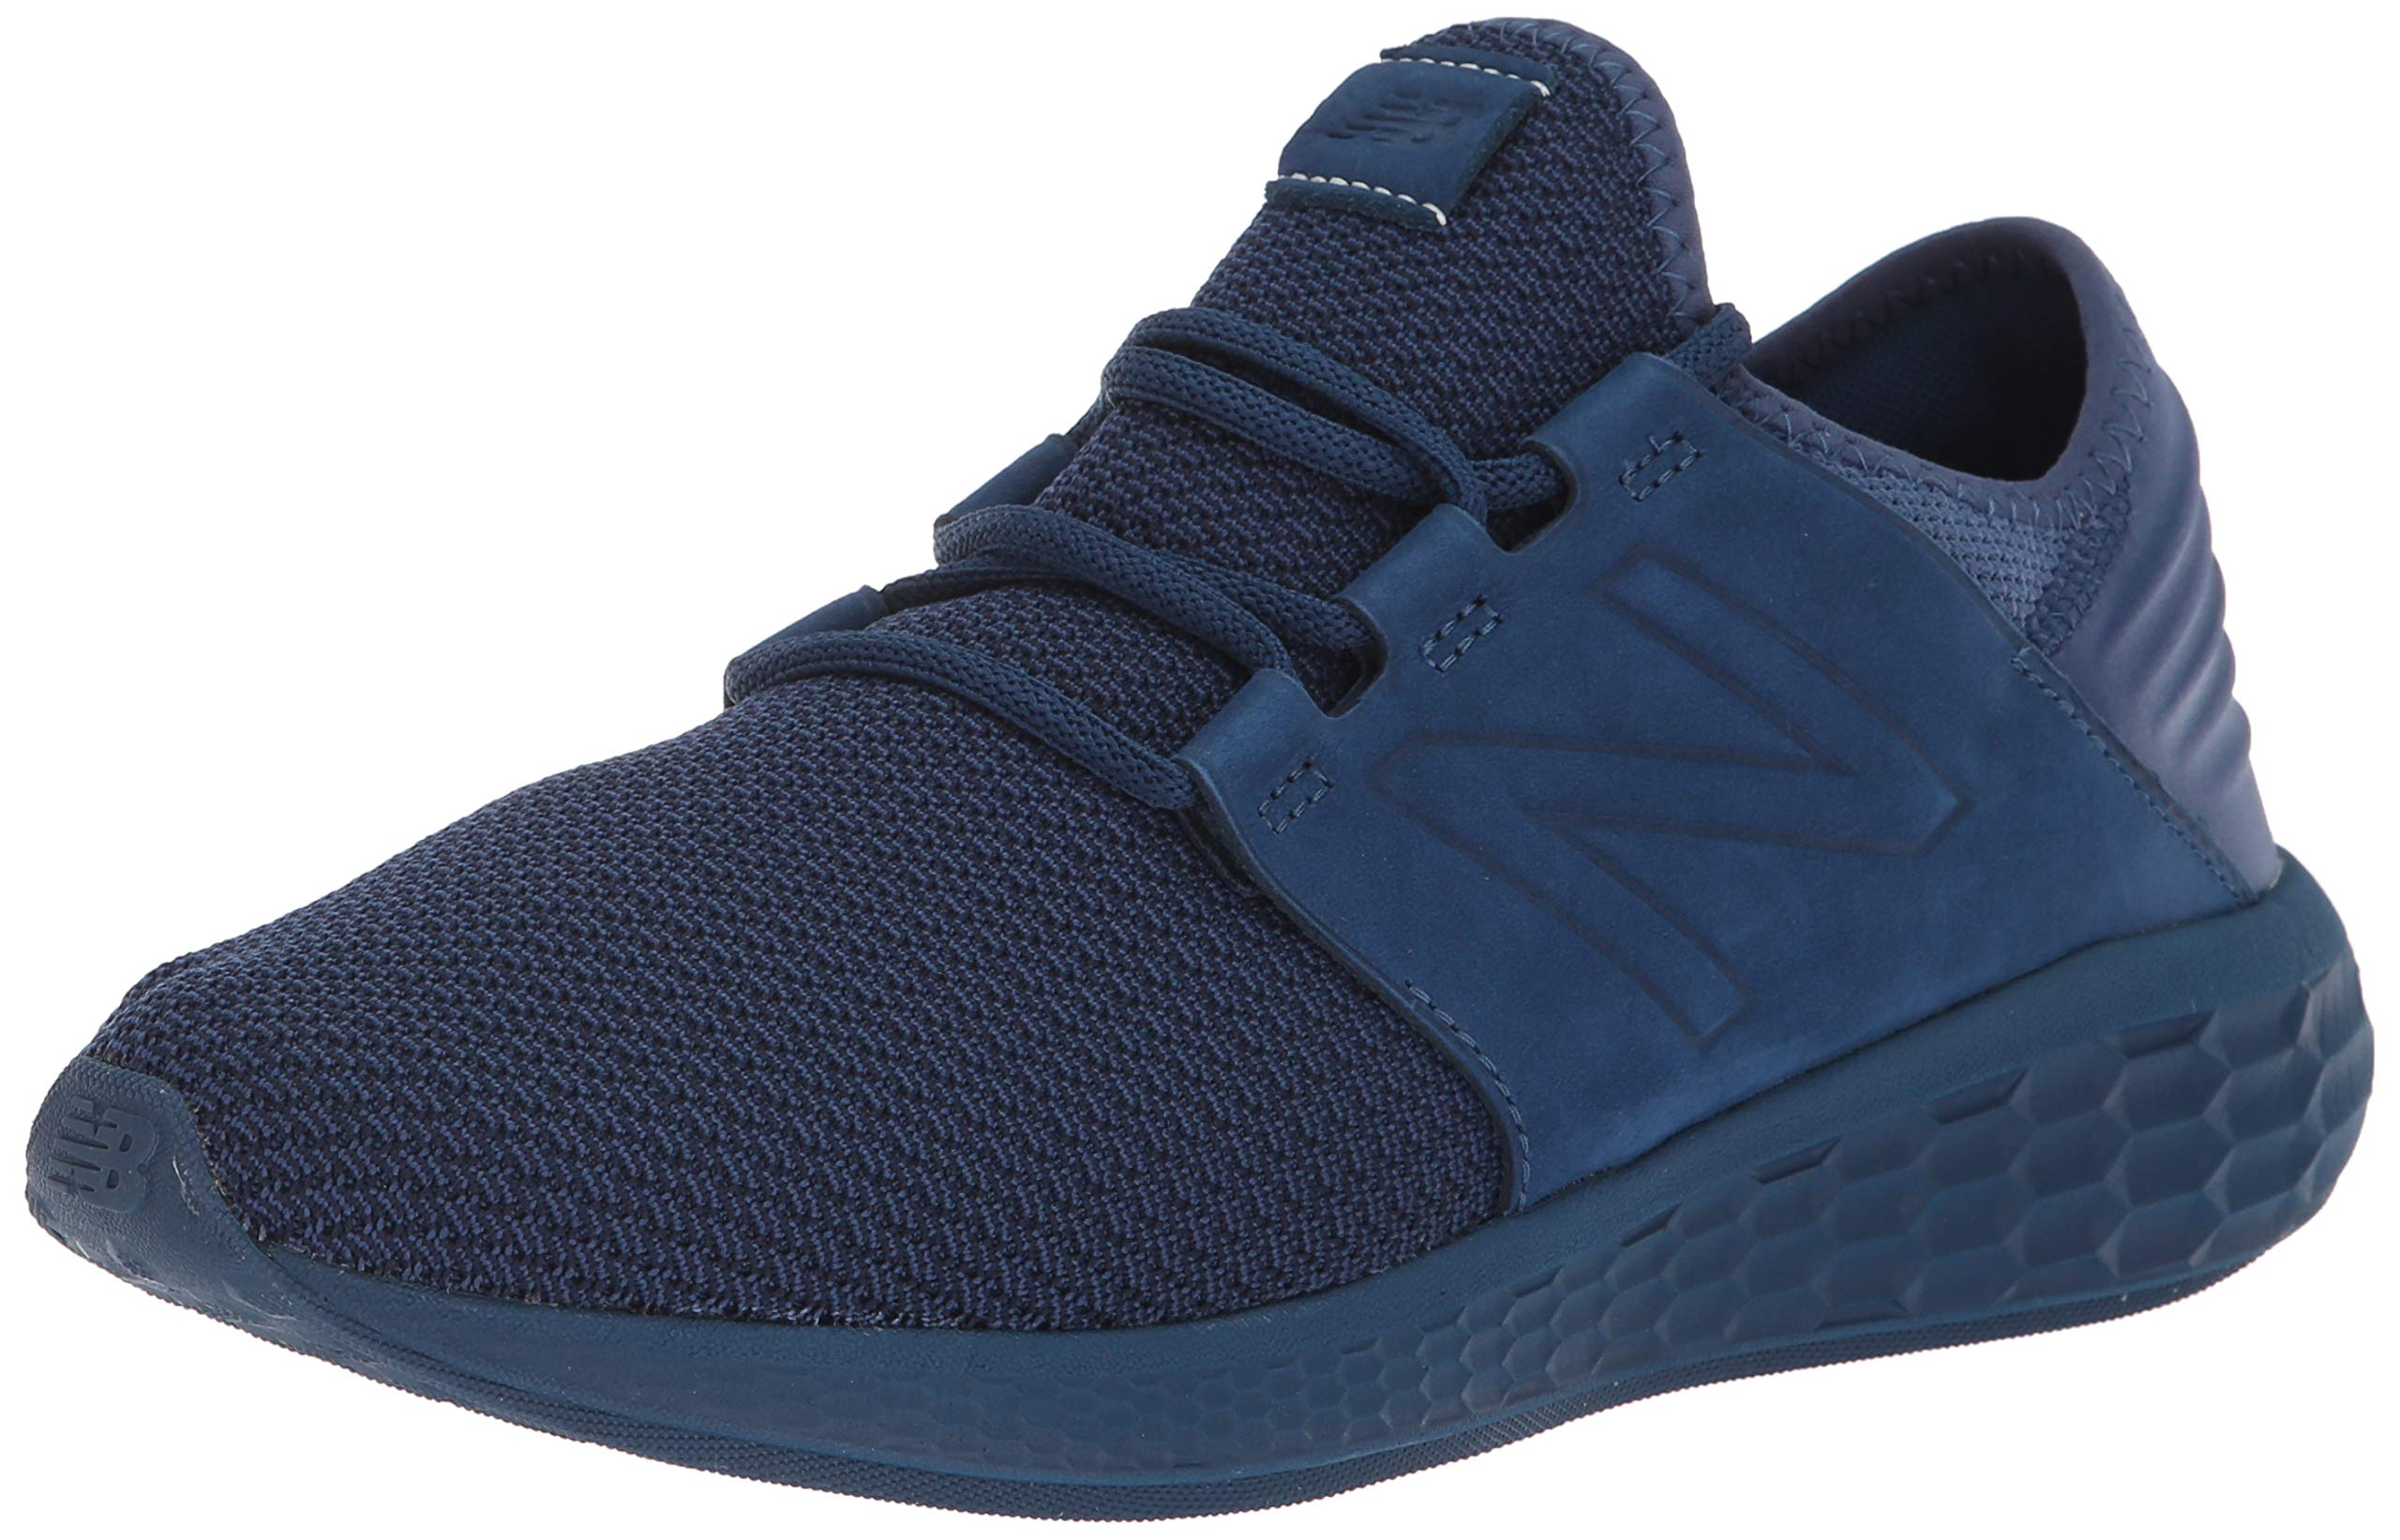 New Balance Men's Cruz V2 Fresh Foam Running Shoe, moroccan tile, 9.5 D US by New Balance